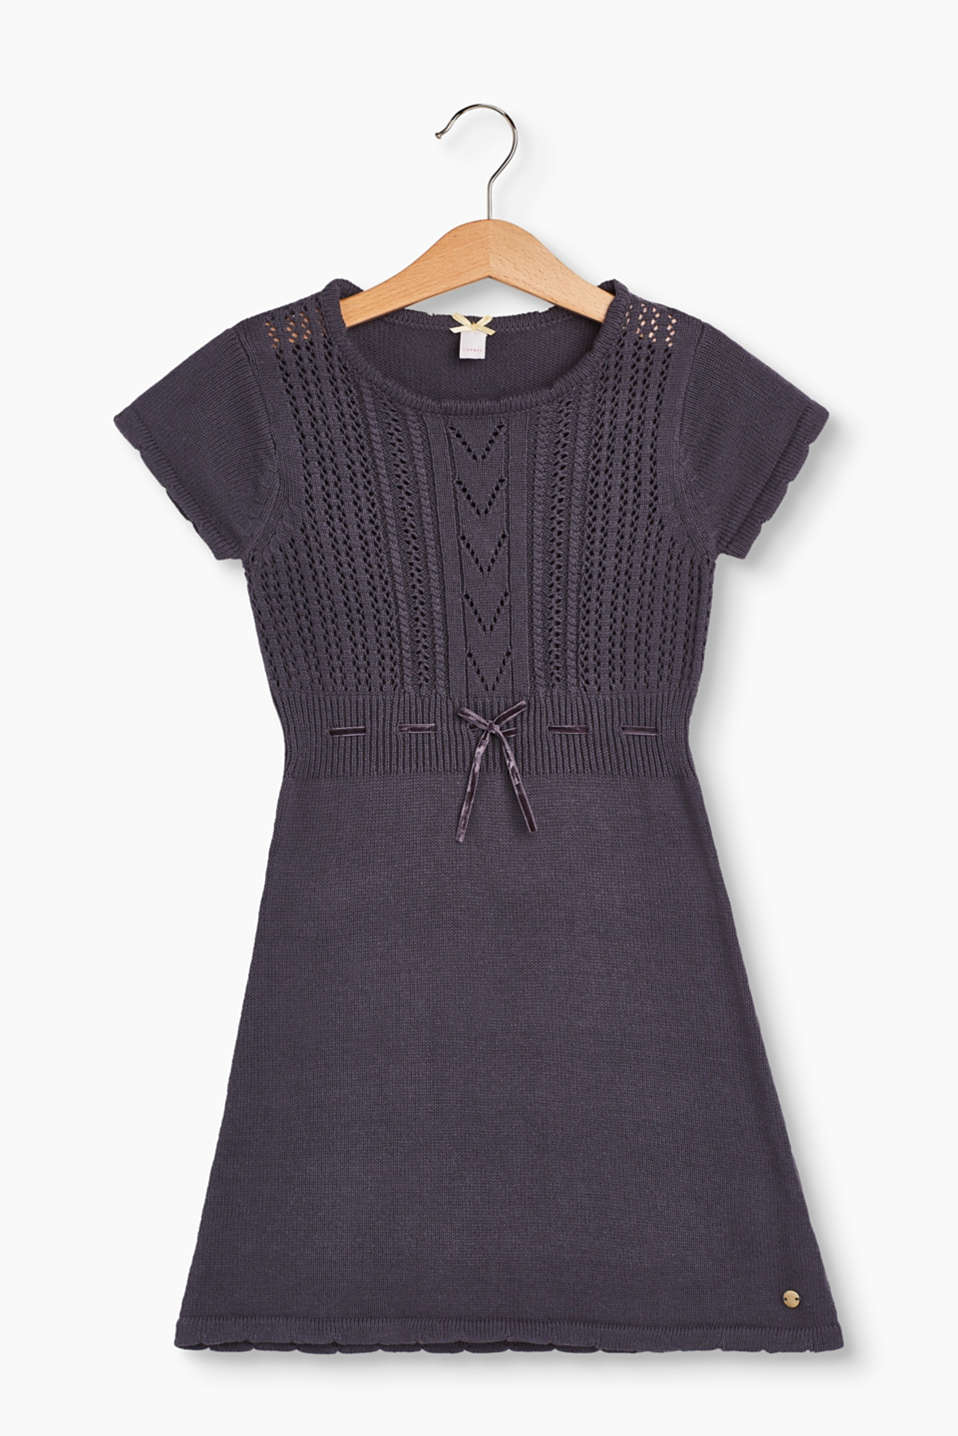 This A-line knitted dress enchants with its premium openwork pattern and pure cotton material.